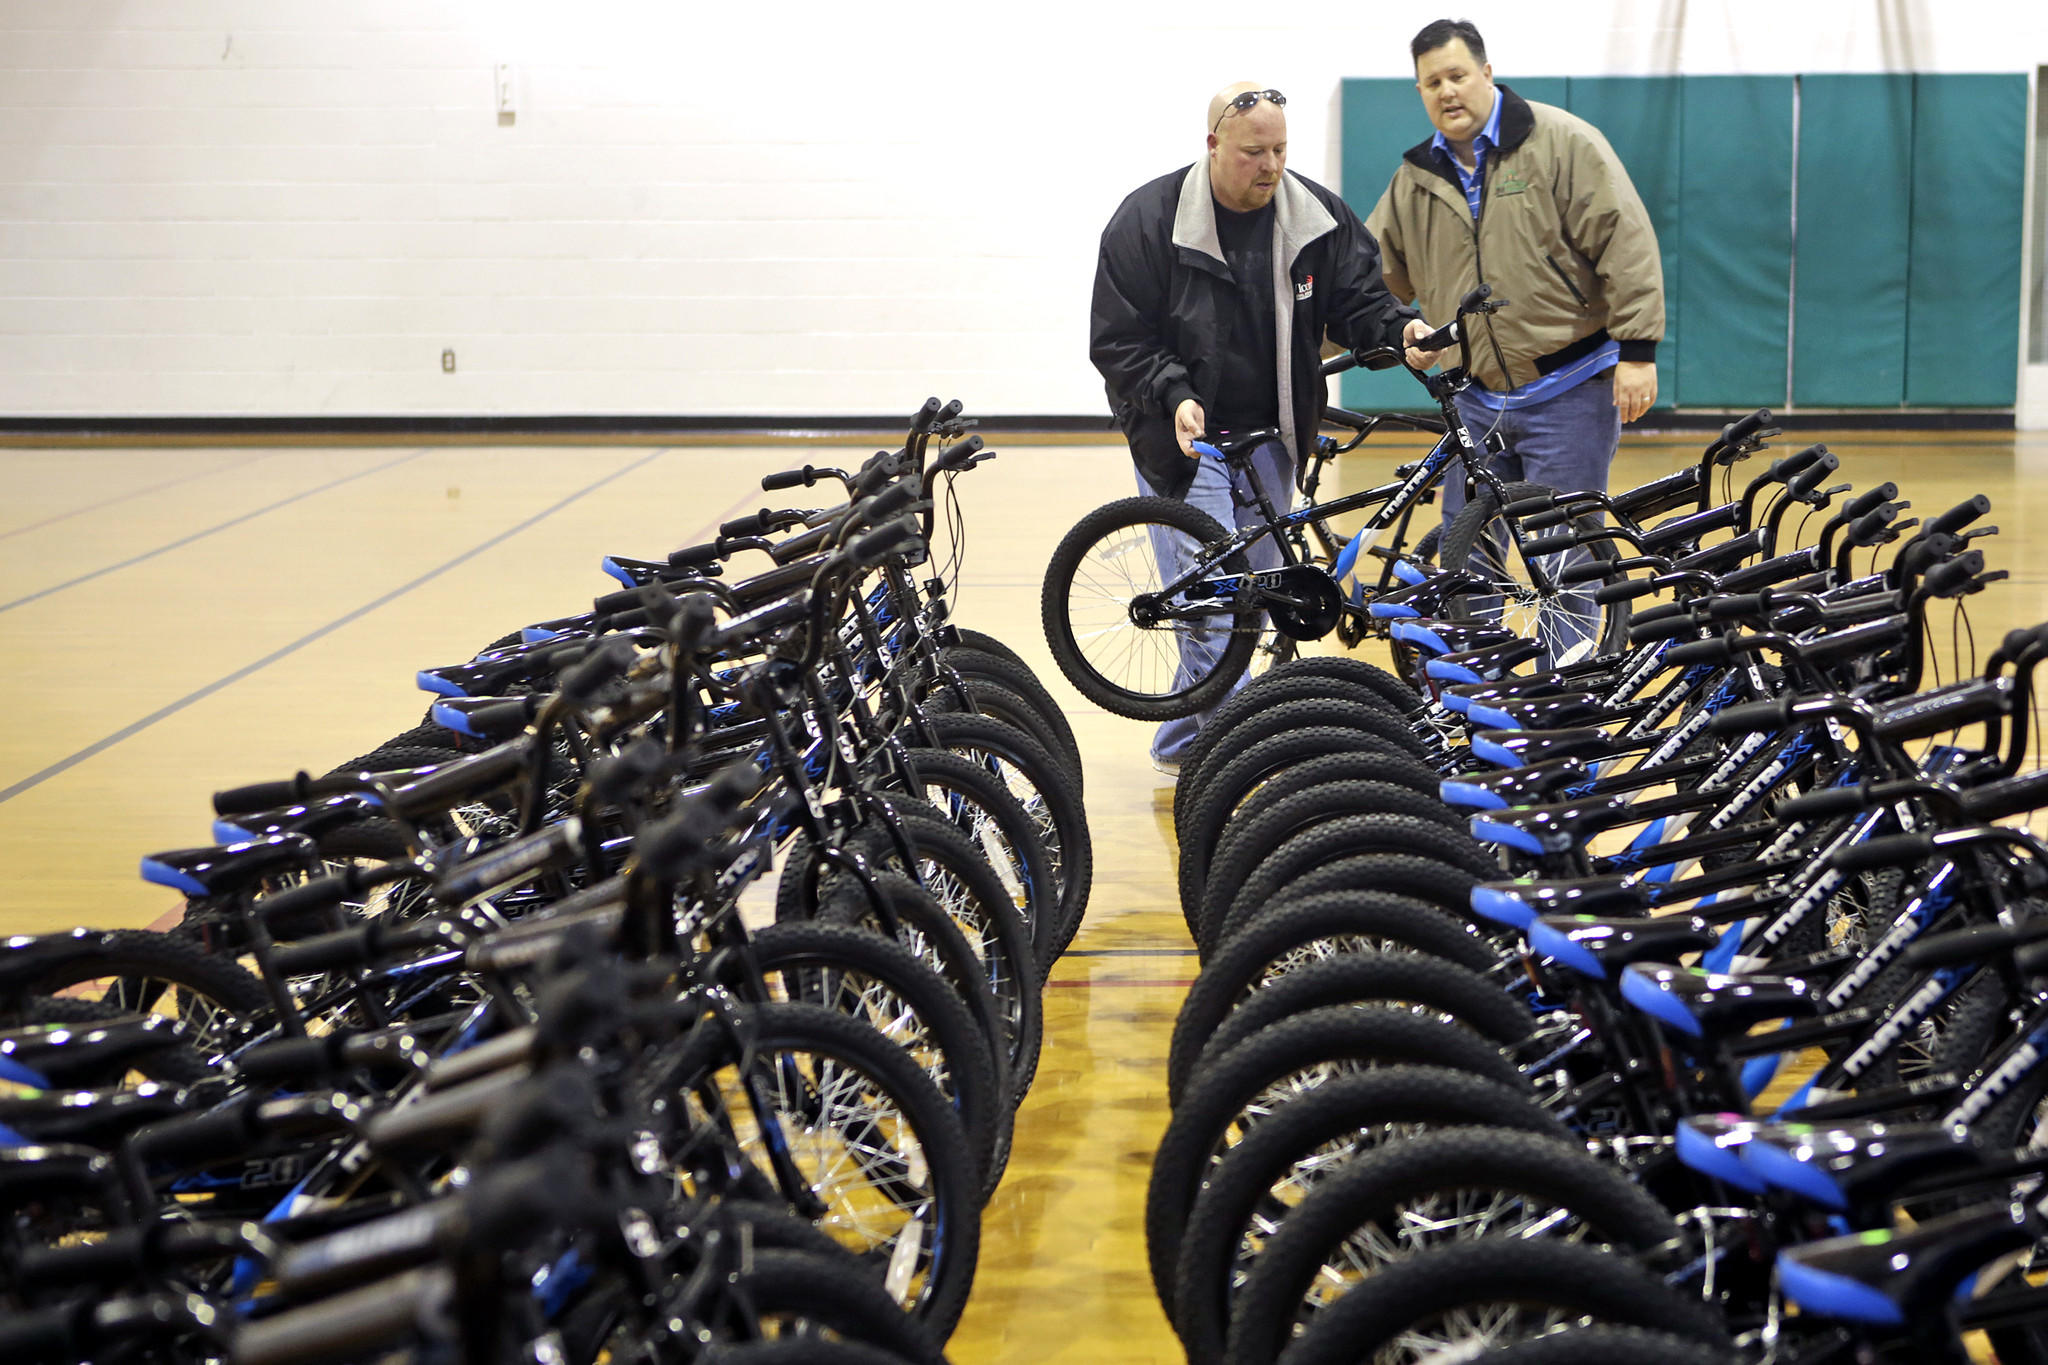 Douglas Atkins, left, and Jim Hicks, right, line up donated bicycles inside the YMCA gymnasium Saturday morning. The Rotary Club of Oyster Point assembled hundreds of bicycles and delivered them to the YMCA to be distributed to children.